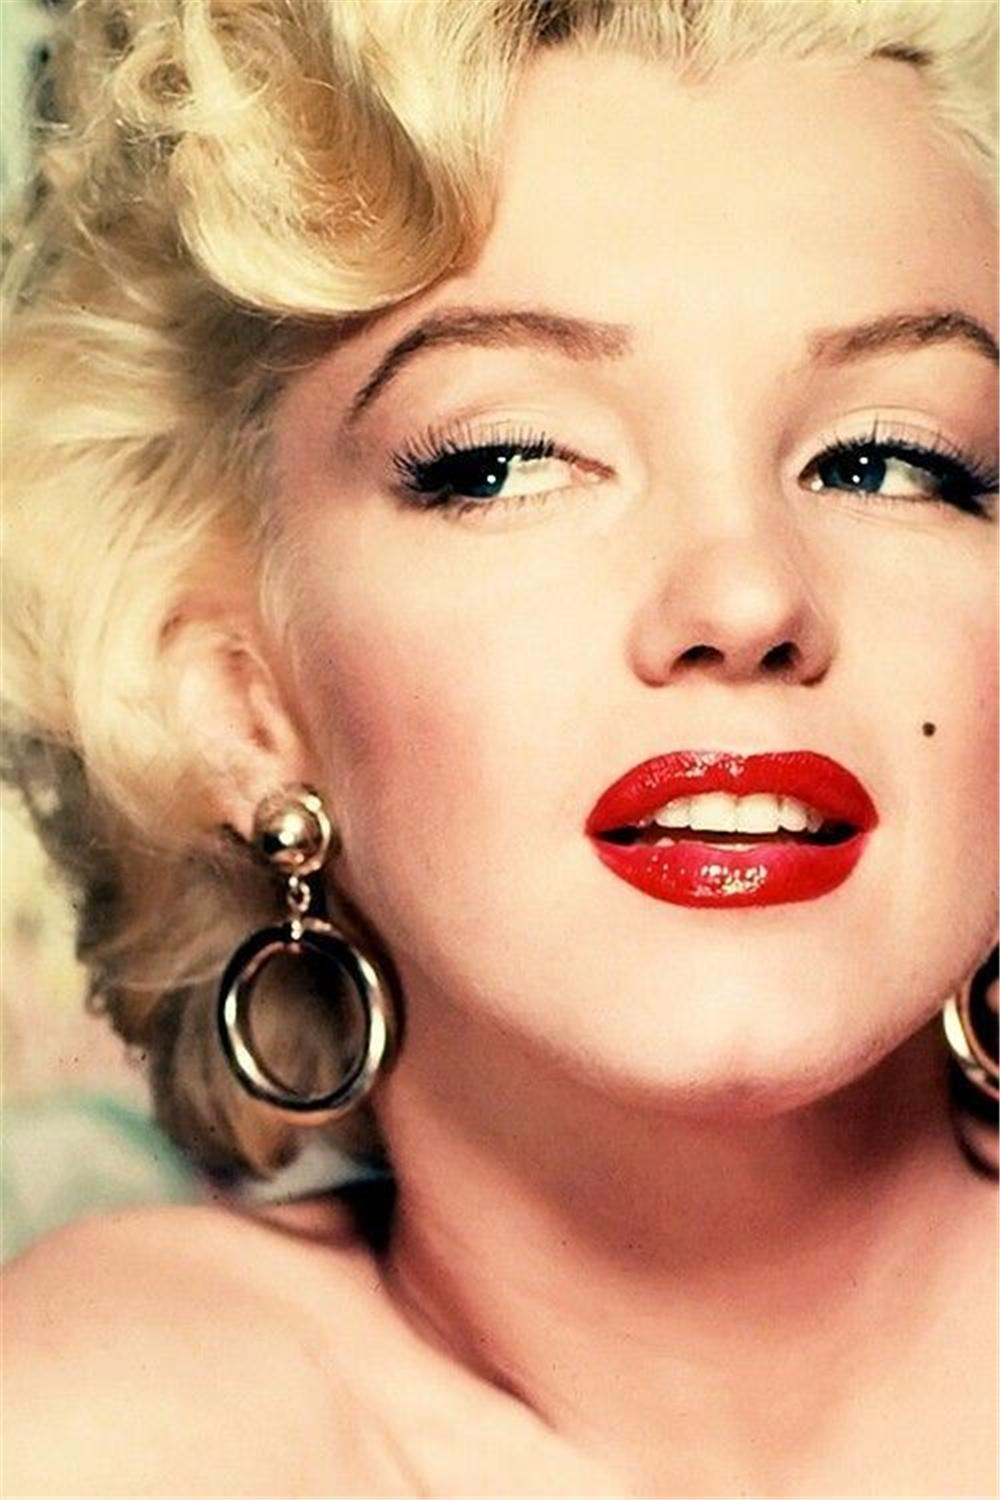 How to Cop Marilyn's Style - for Those Who Like It Hot